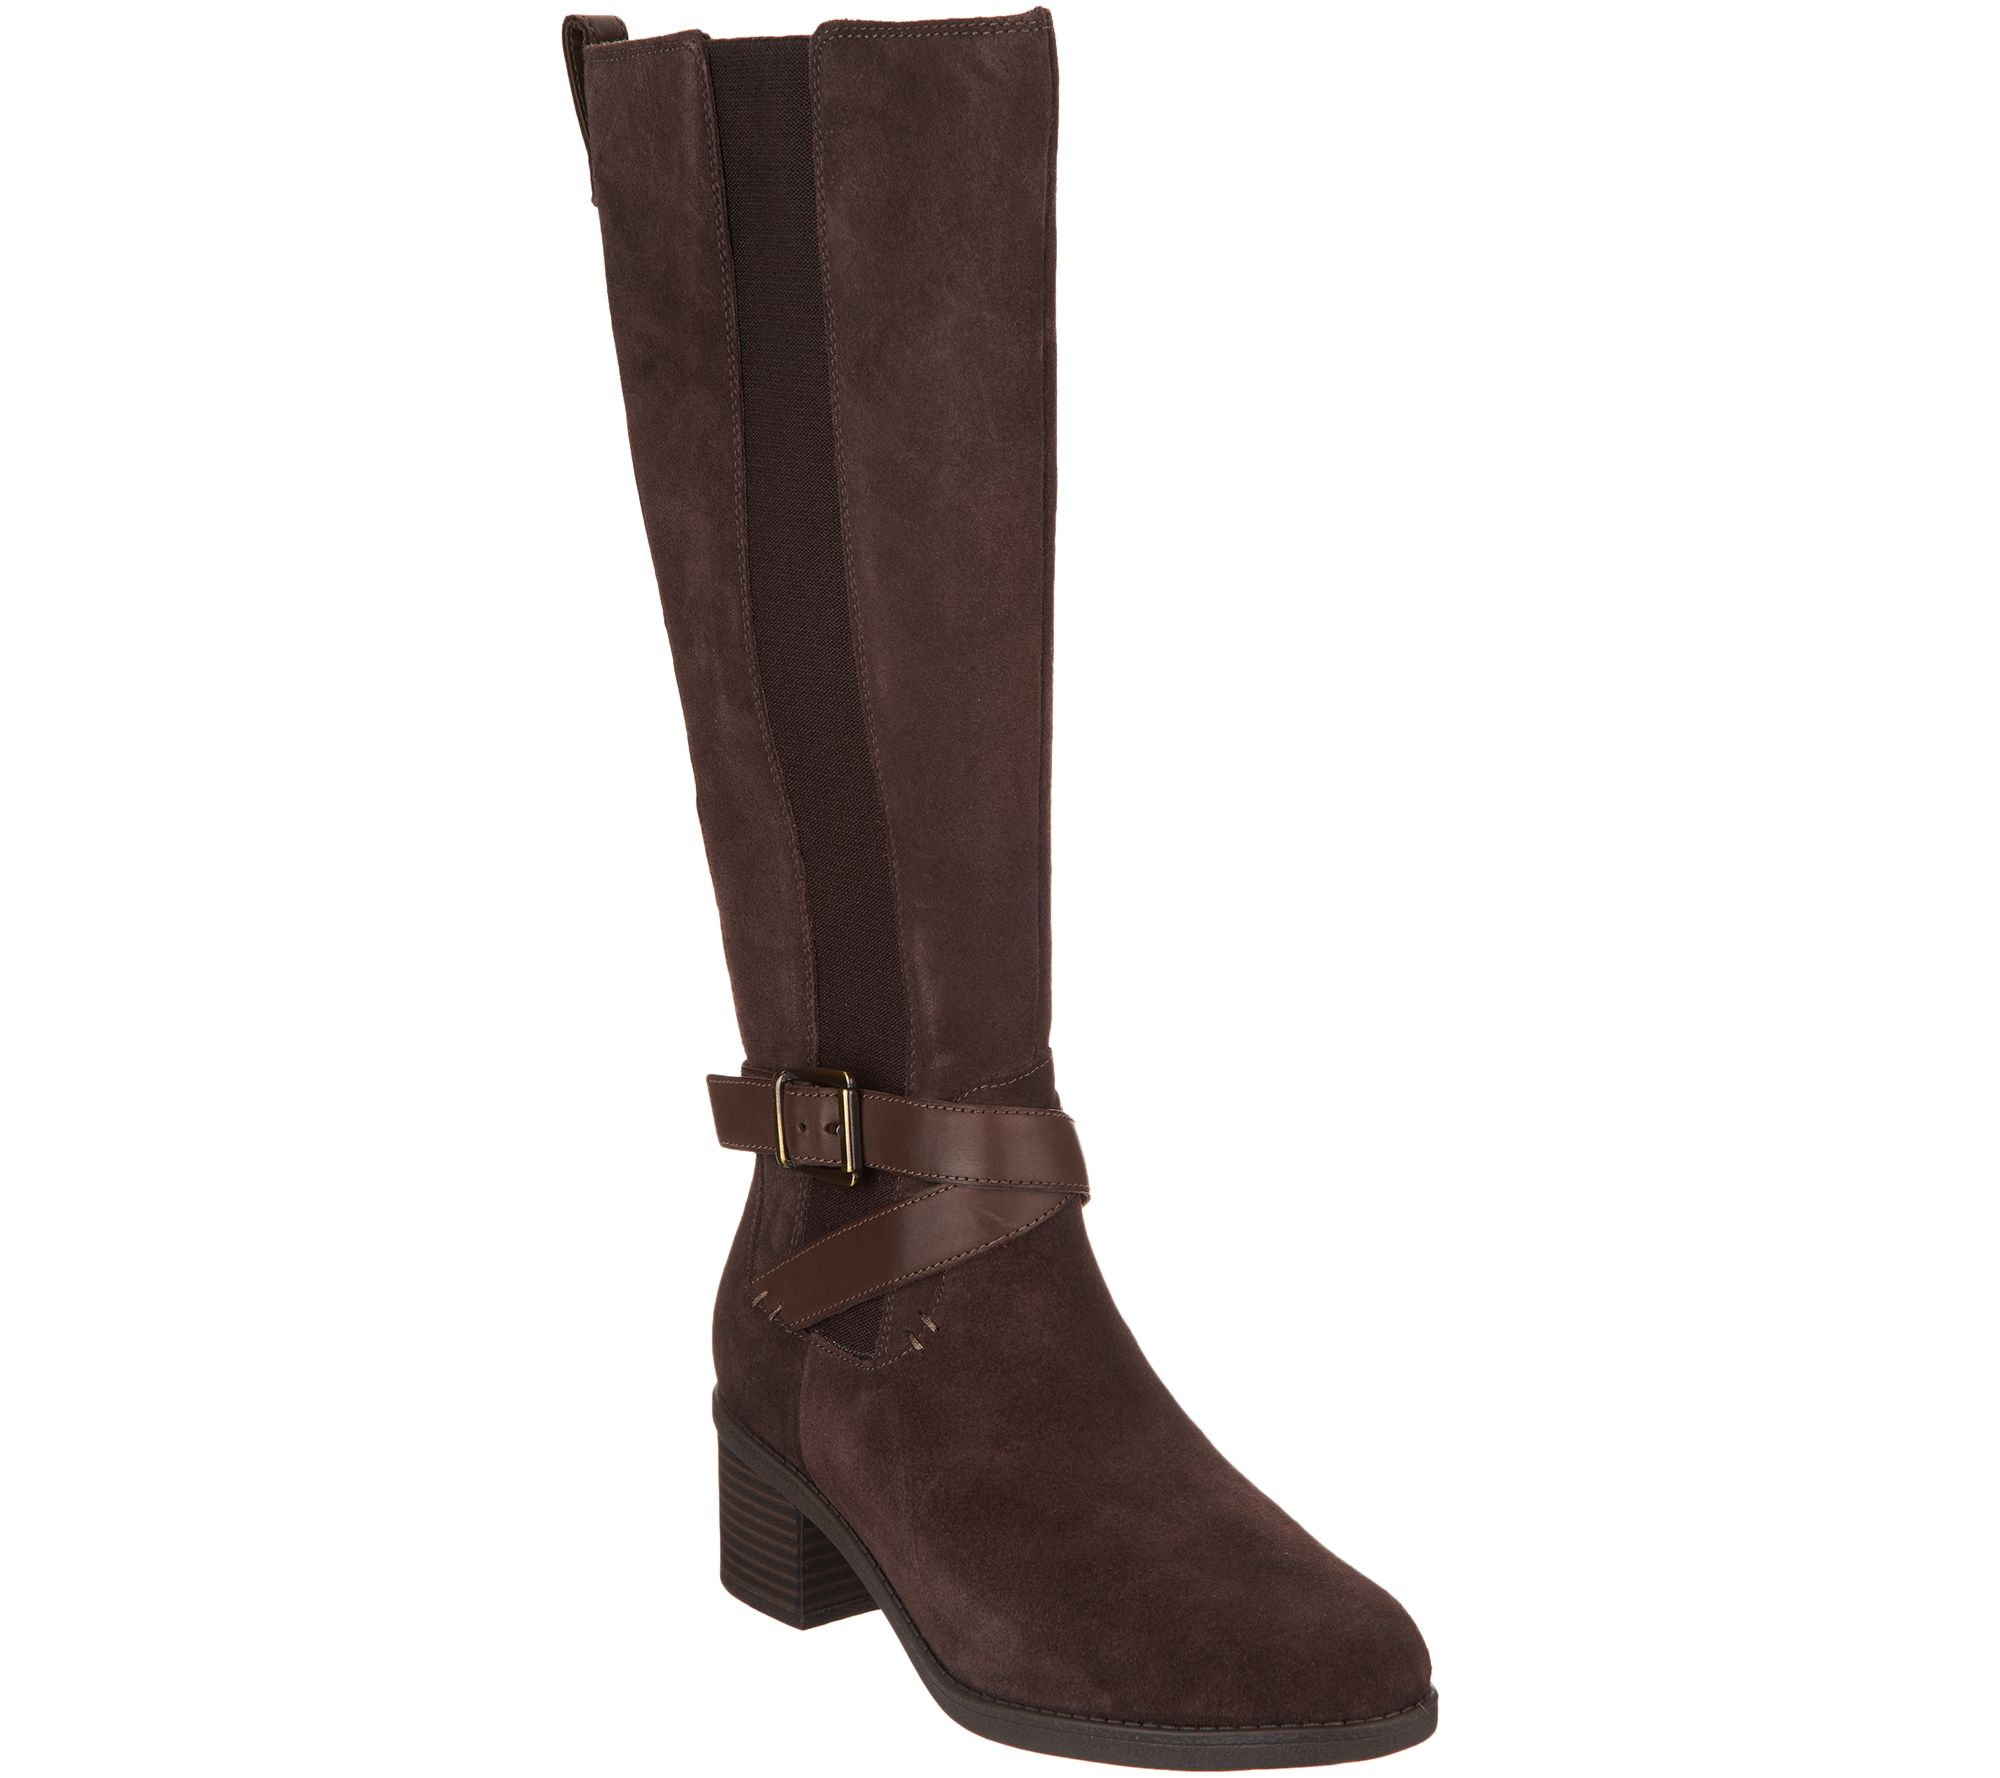 Clarks Leather Tall Boots with Goring - Nevella March how much visit new sale online SIMohsEbFB